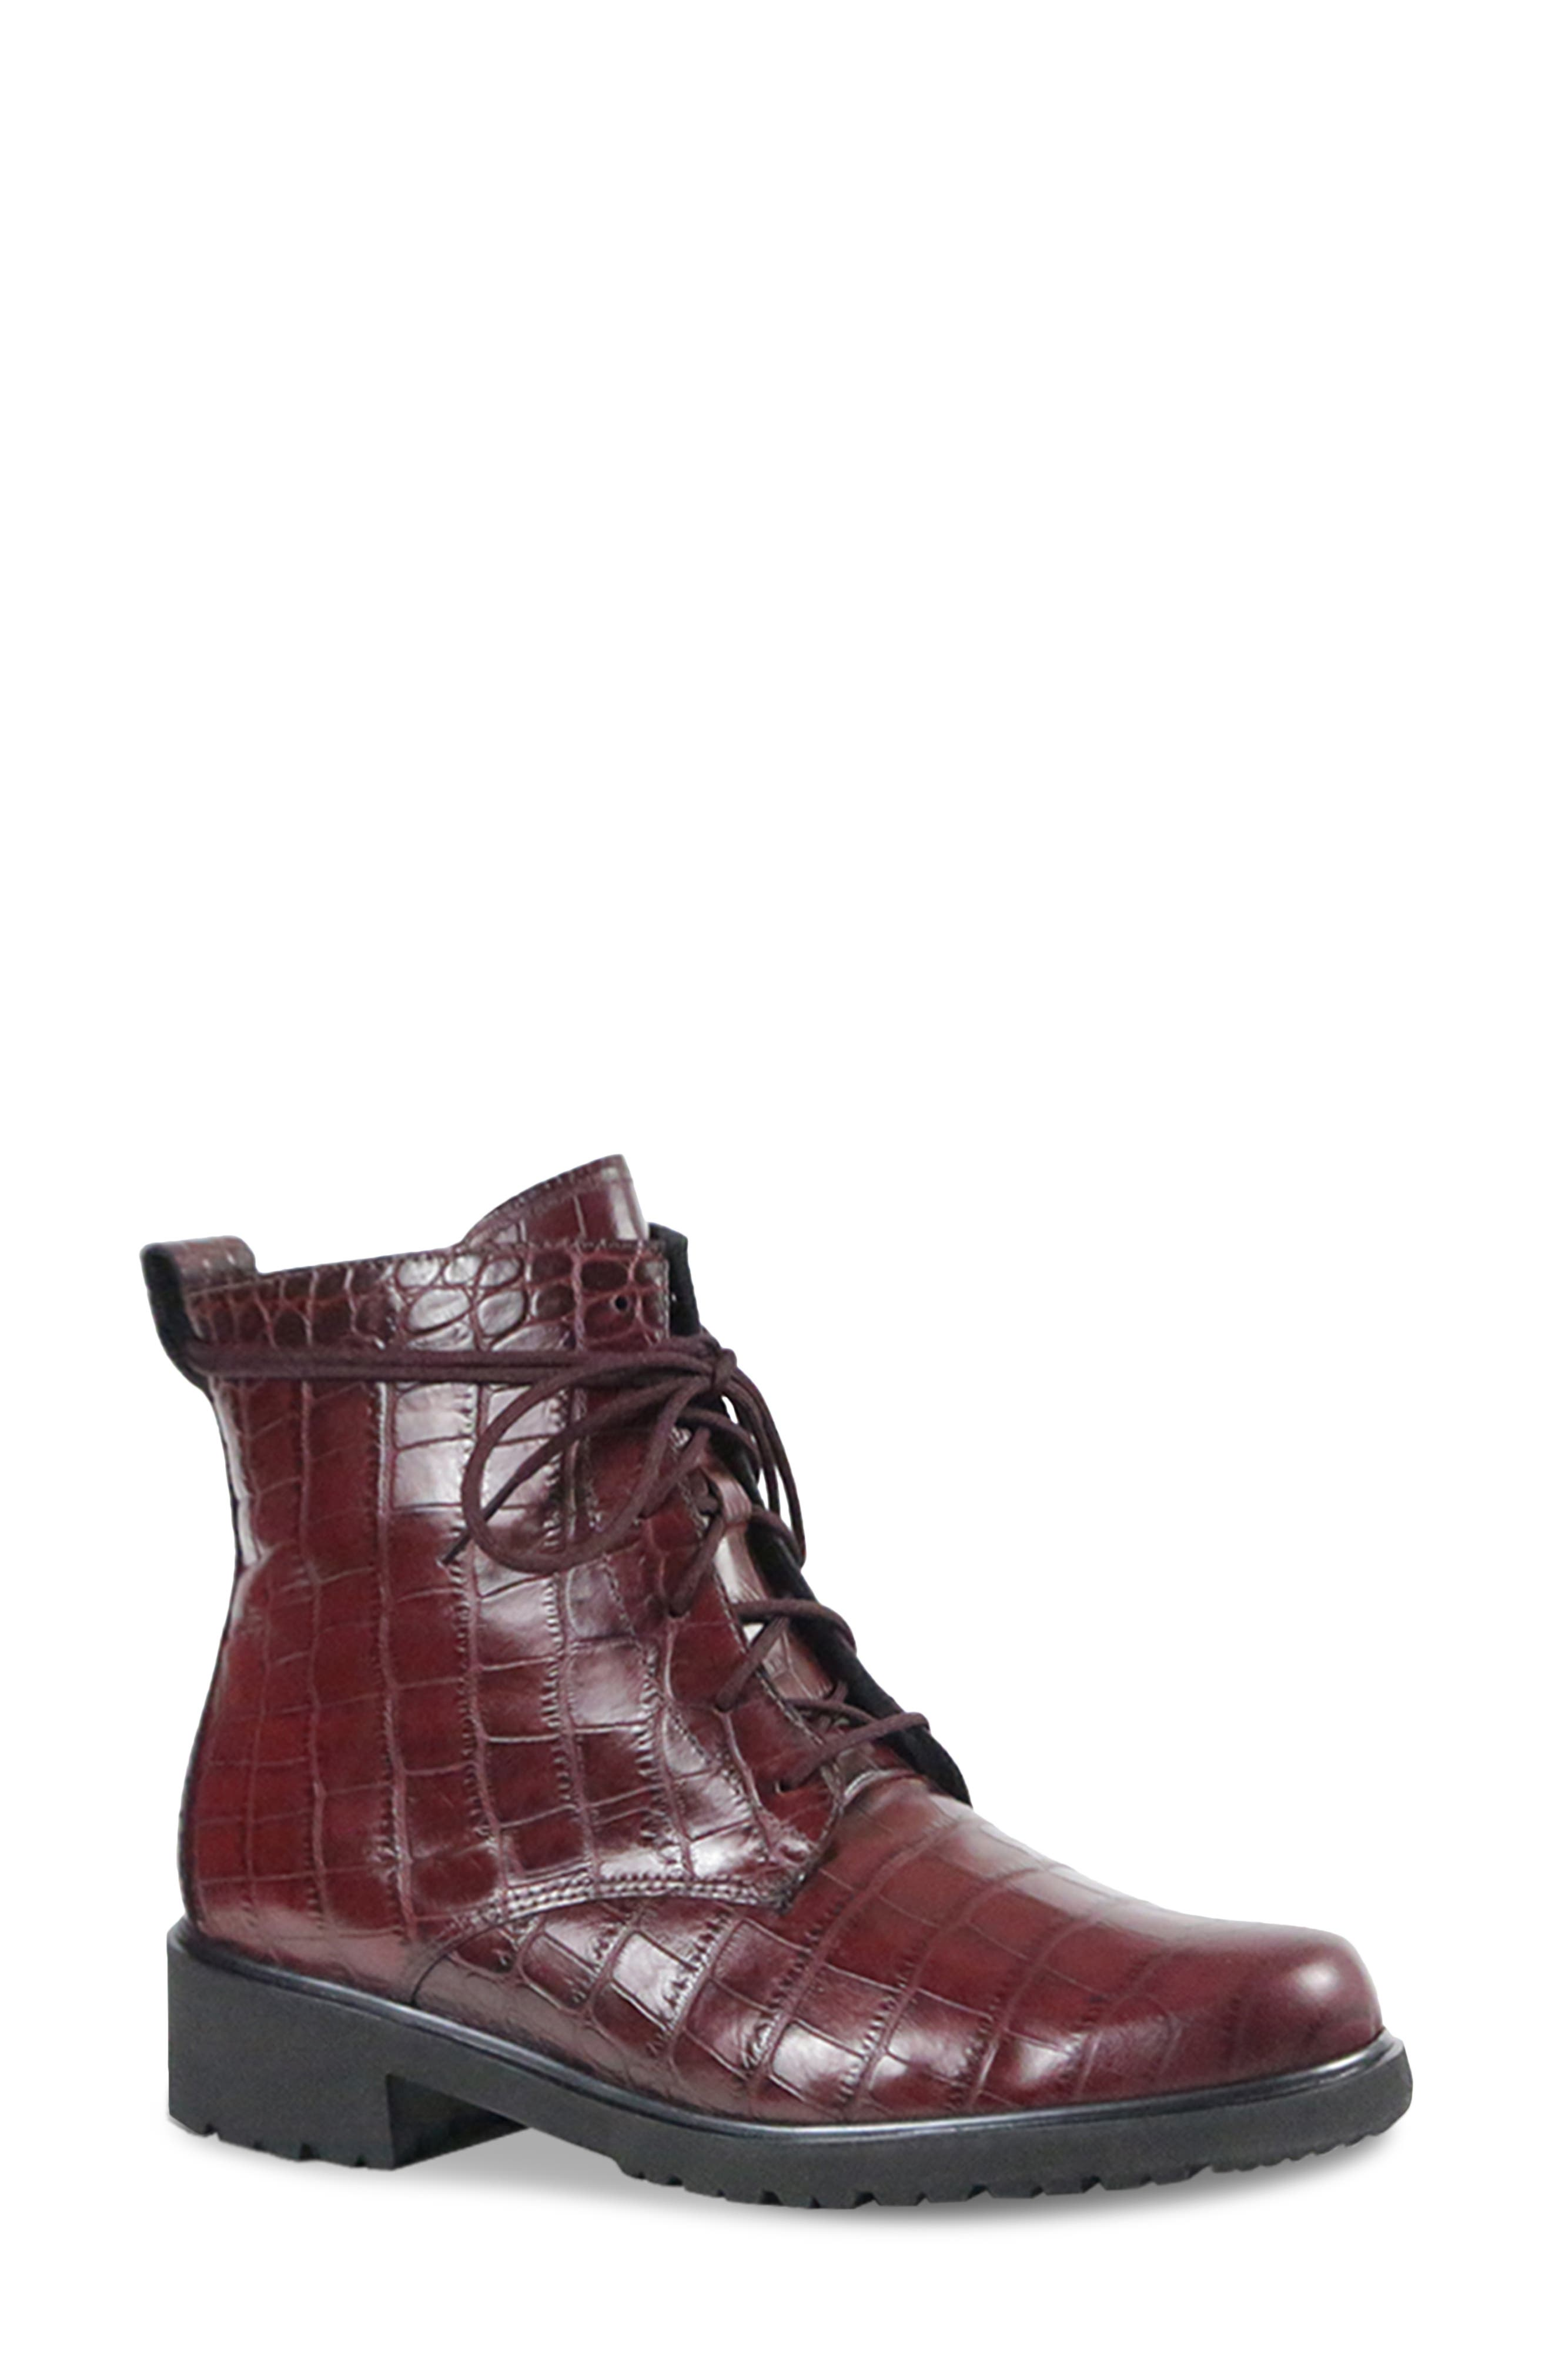 Svelte laces weave up the front and tie at the top of a streamlined bootie with a menswear-inspired Victorian profile grounded by a traction-enhancing sole. Style Name: Munro Finley Bootie (Women). Style Number: 6093592. Available in stores.